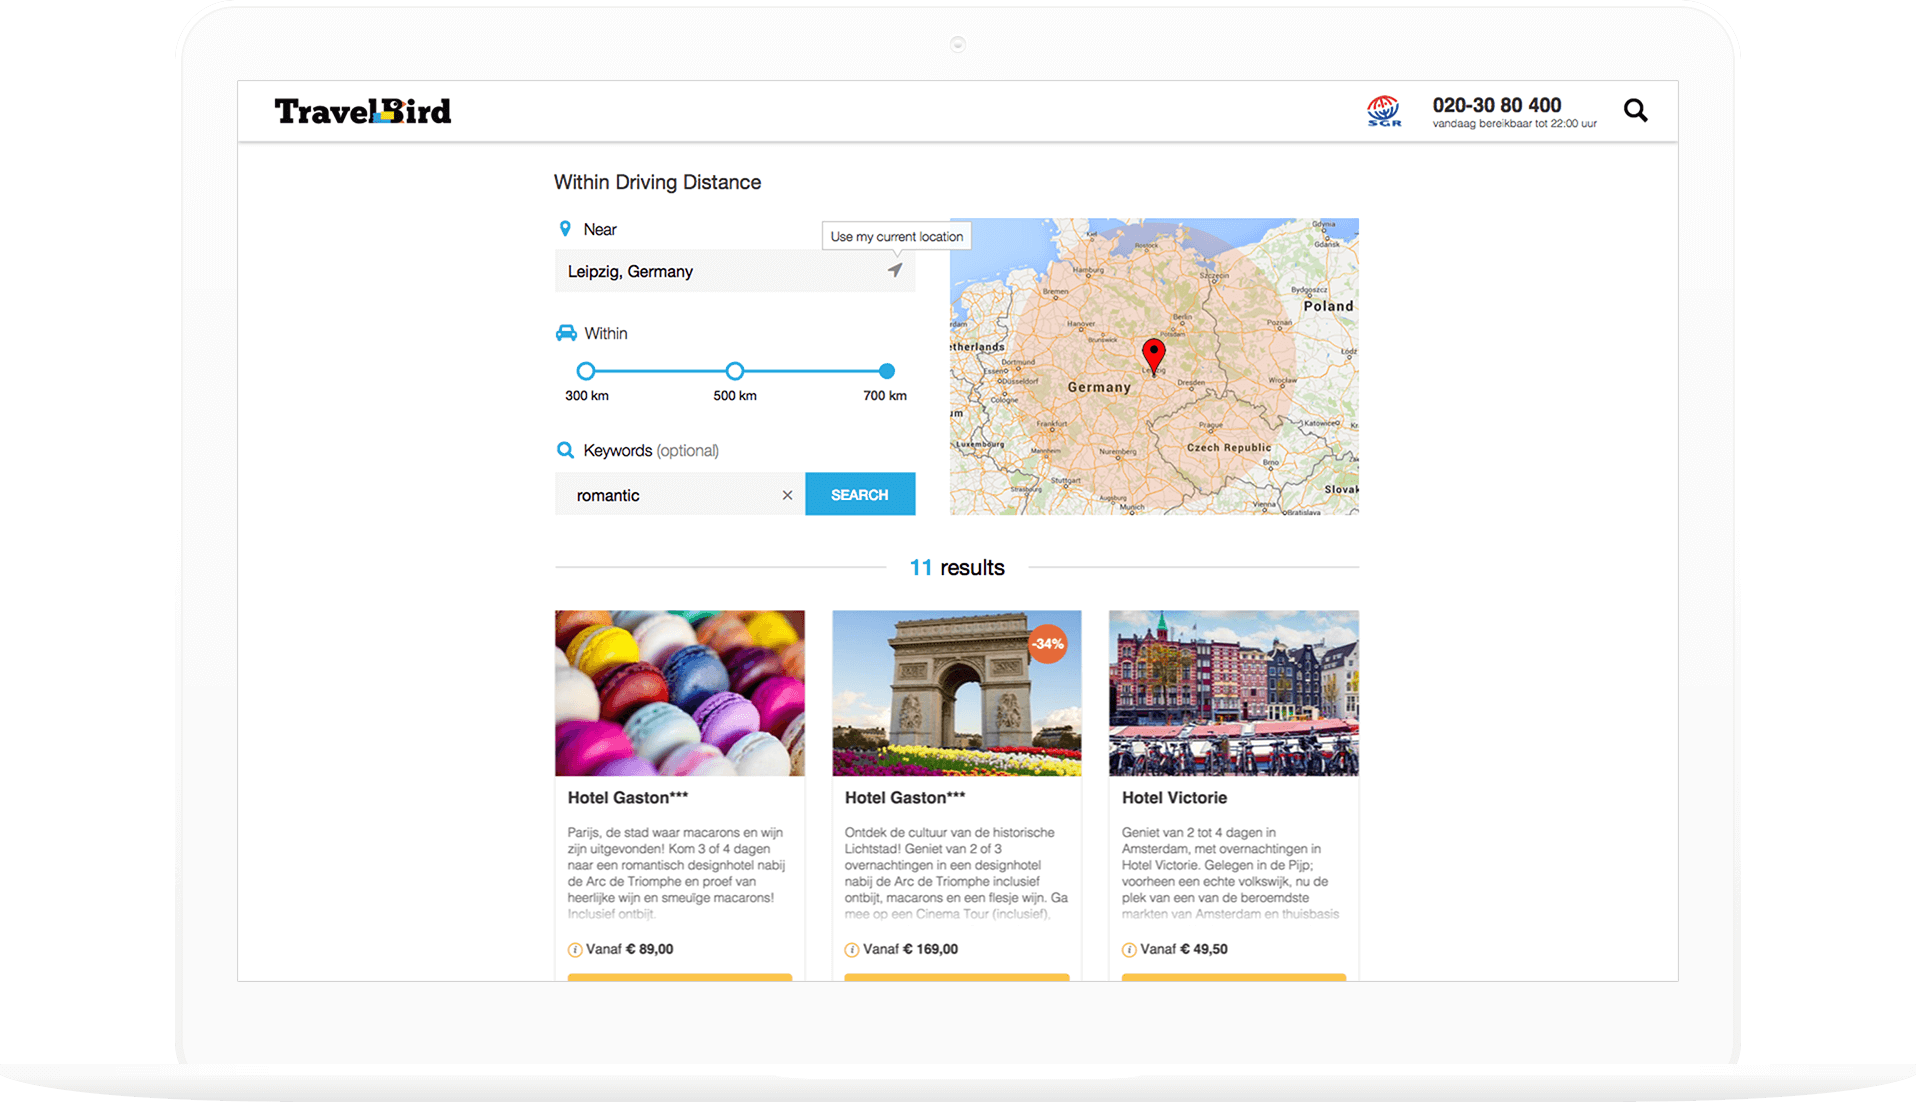 Final UX UI design with search fields, map, and hotel options